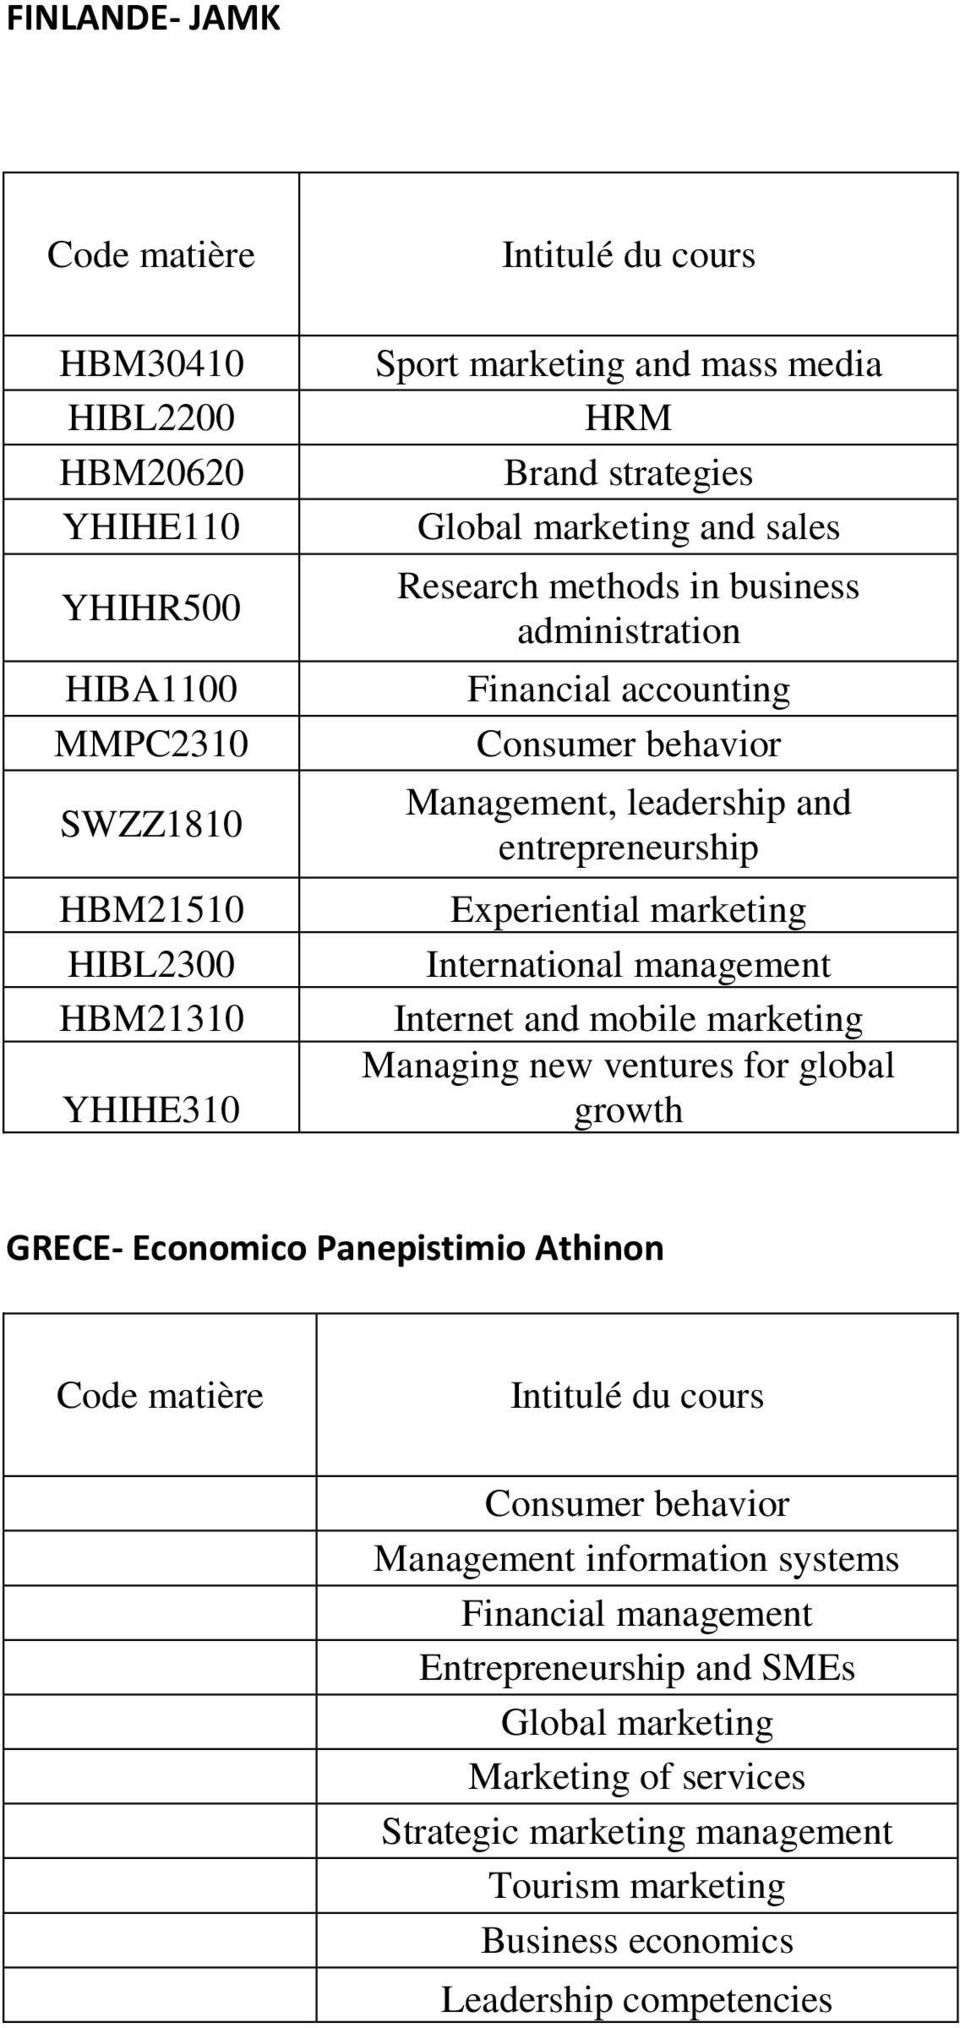 International management Internet and mobile marketing Managing new ventures for global growth GRECE- Economico Panepistimio Athinon Consumer behavior Management information